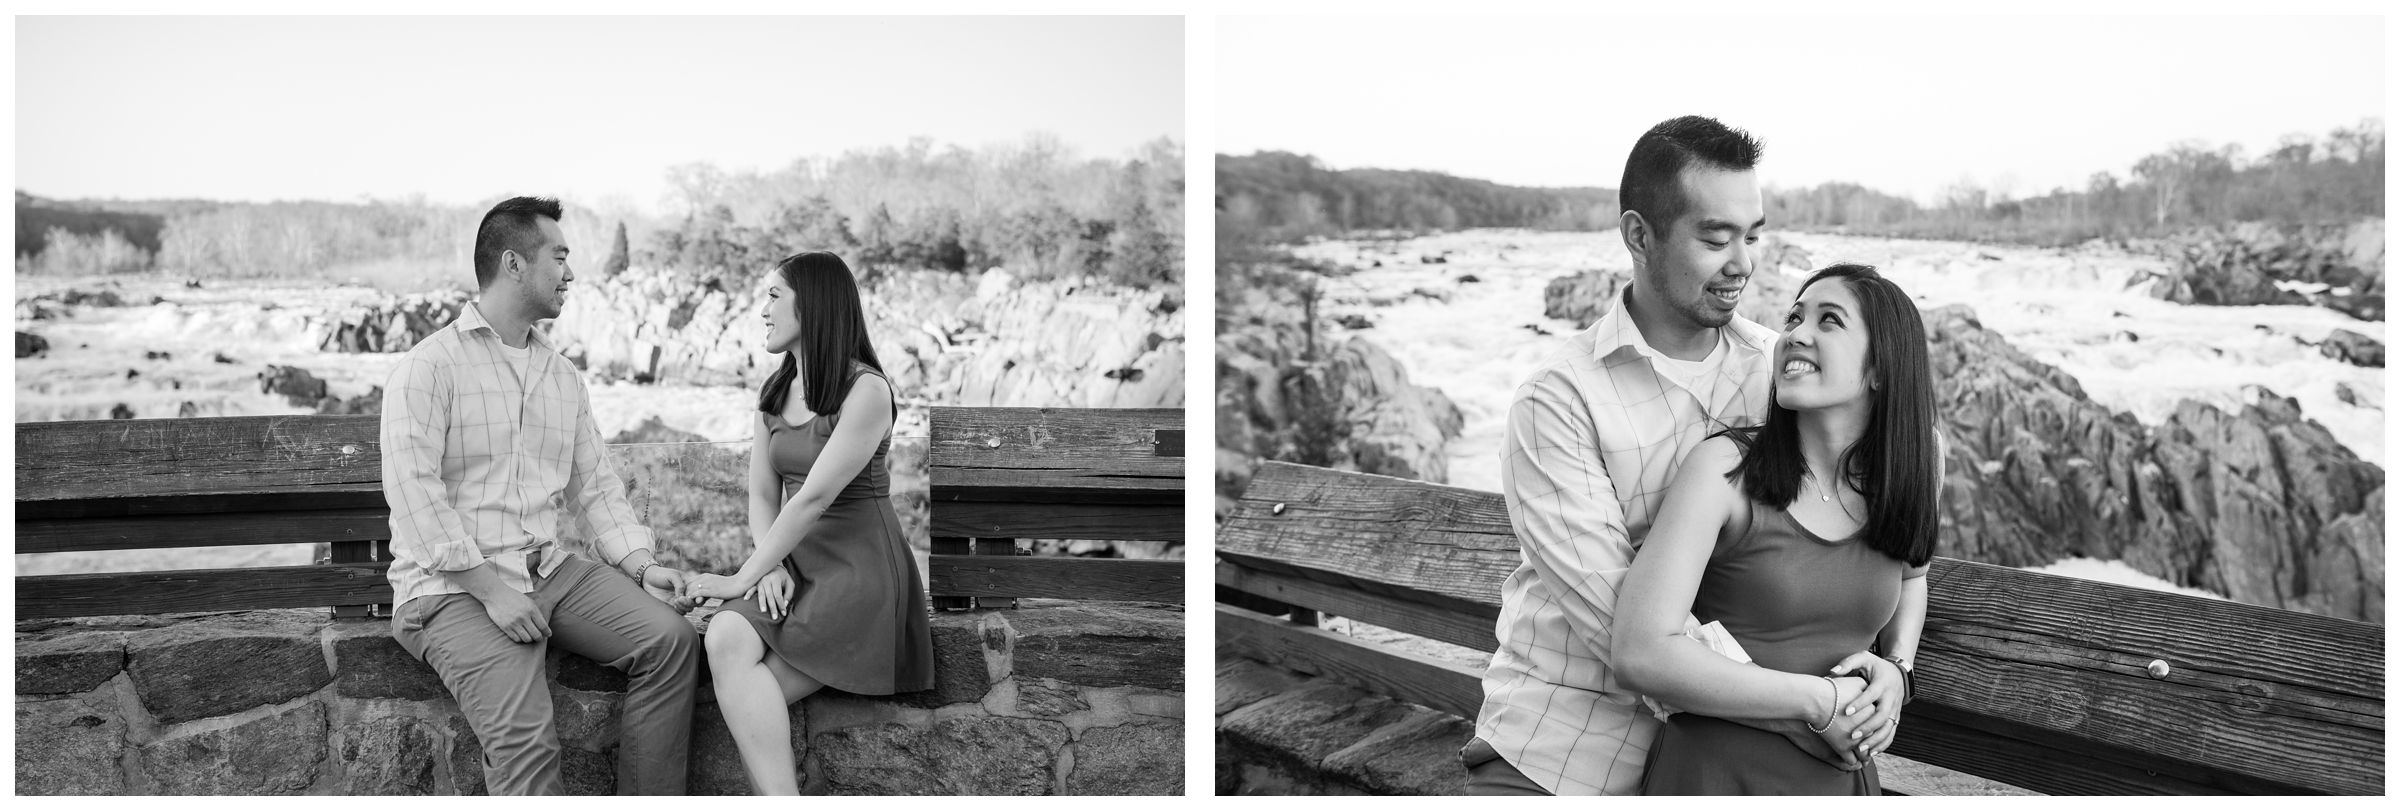 riverfront engagement photos at Great Falls Park in Northern Virginia